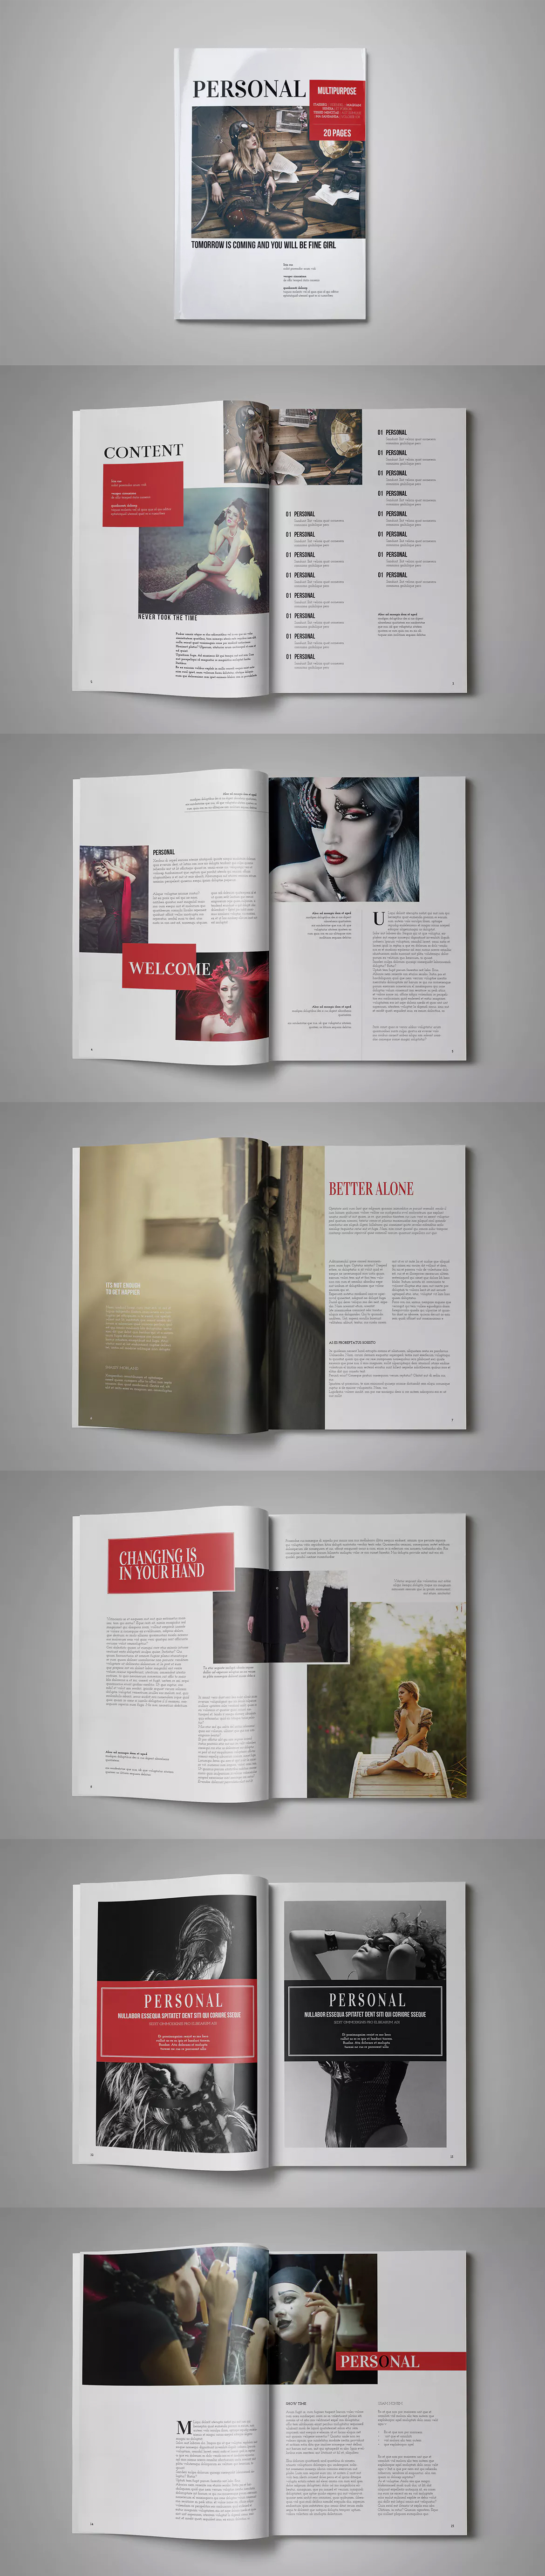 Multipurpose Magazine Template InDesign INDD A4 | Laout magazine ...